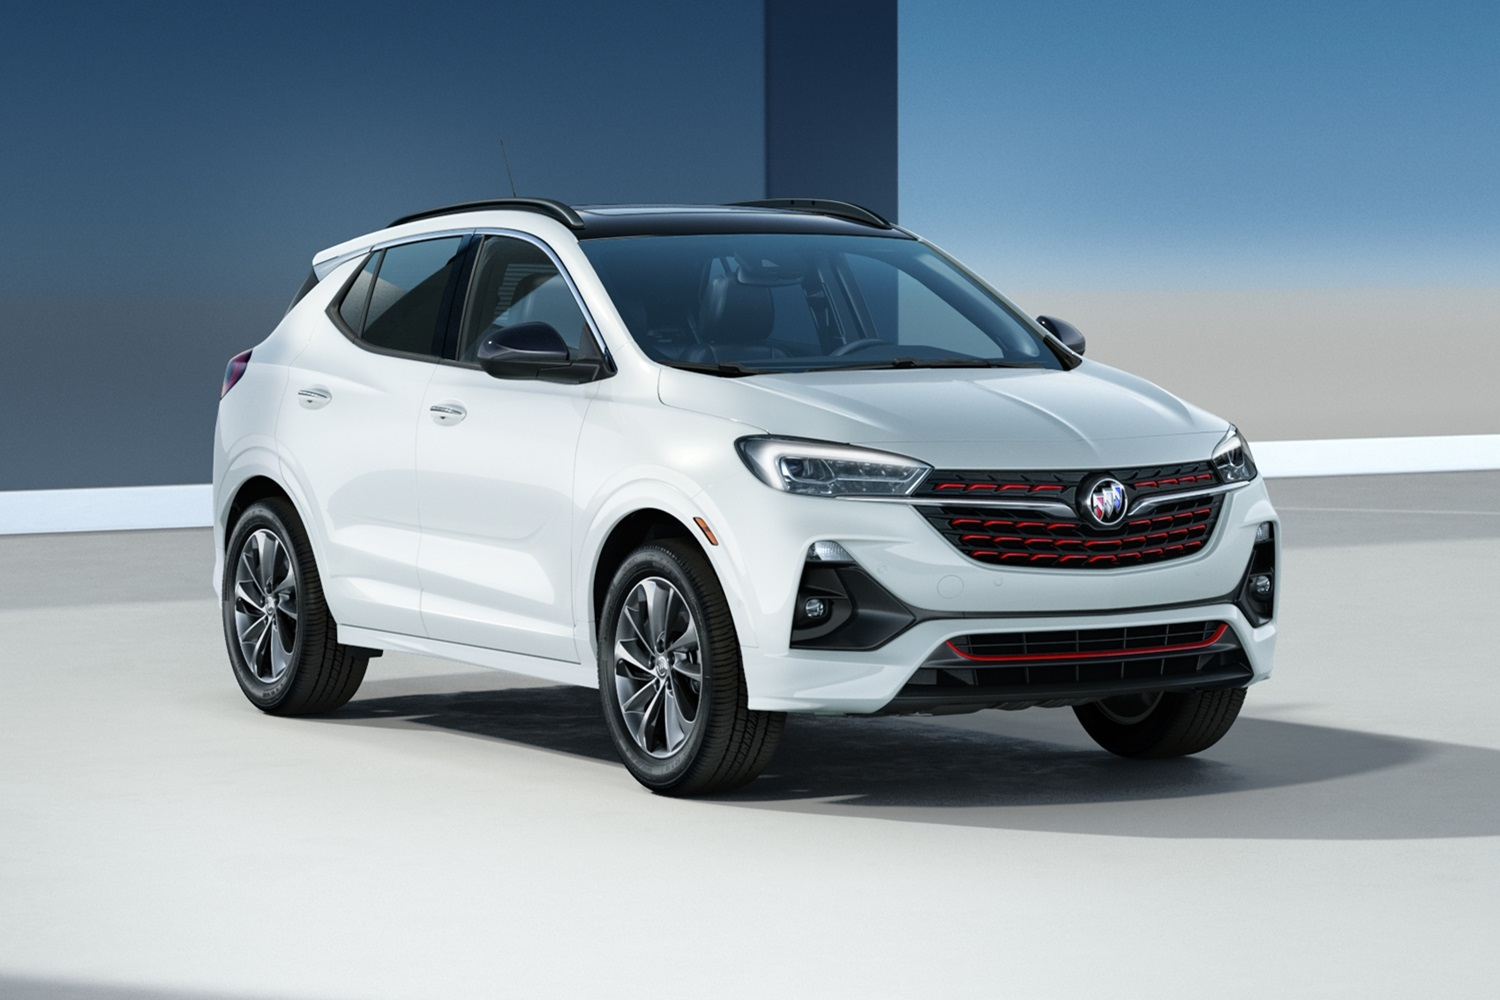 2020 Buick Encore Gx Vs. Buick Encore: Dimensions | Gm Authority 2022 Buick Encore Cargo Space, Cost, Curb Weight